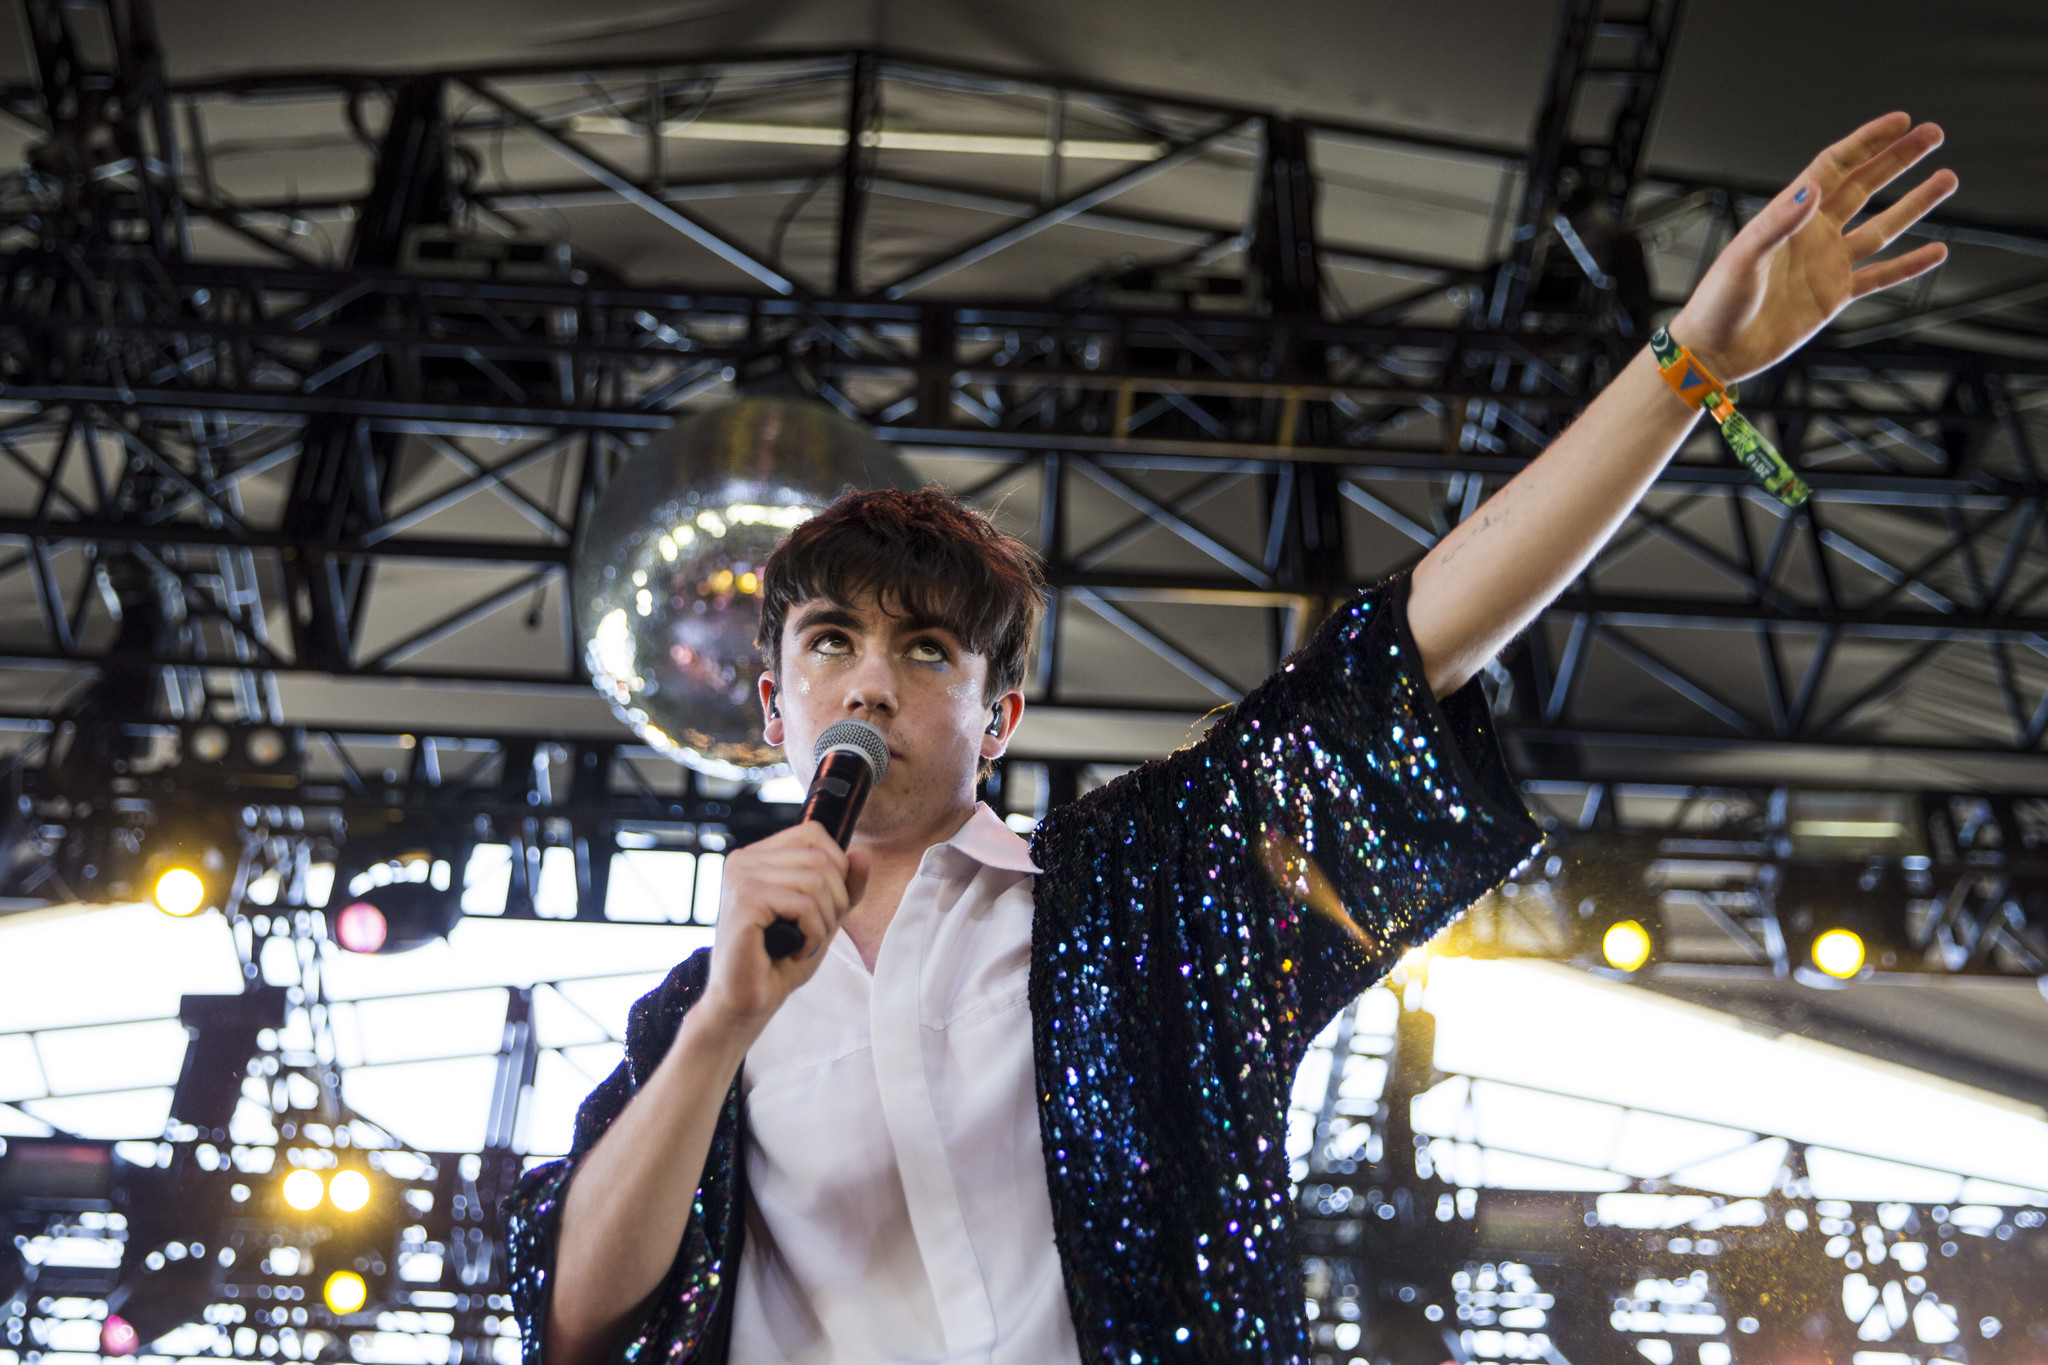 Declan McKenna performs Saturday at the Coachella Valley Music and Arts Festival. (Kent Nishimura / Los Angeles Times)